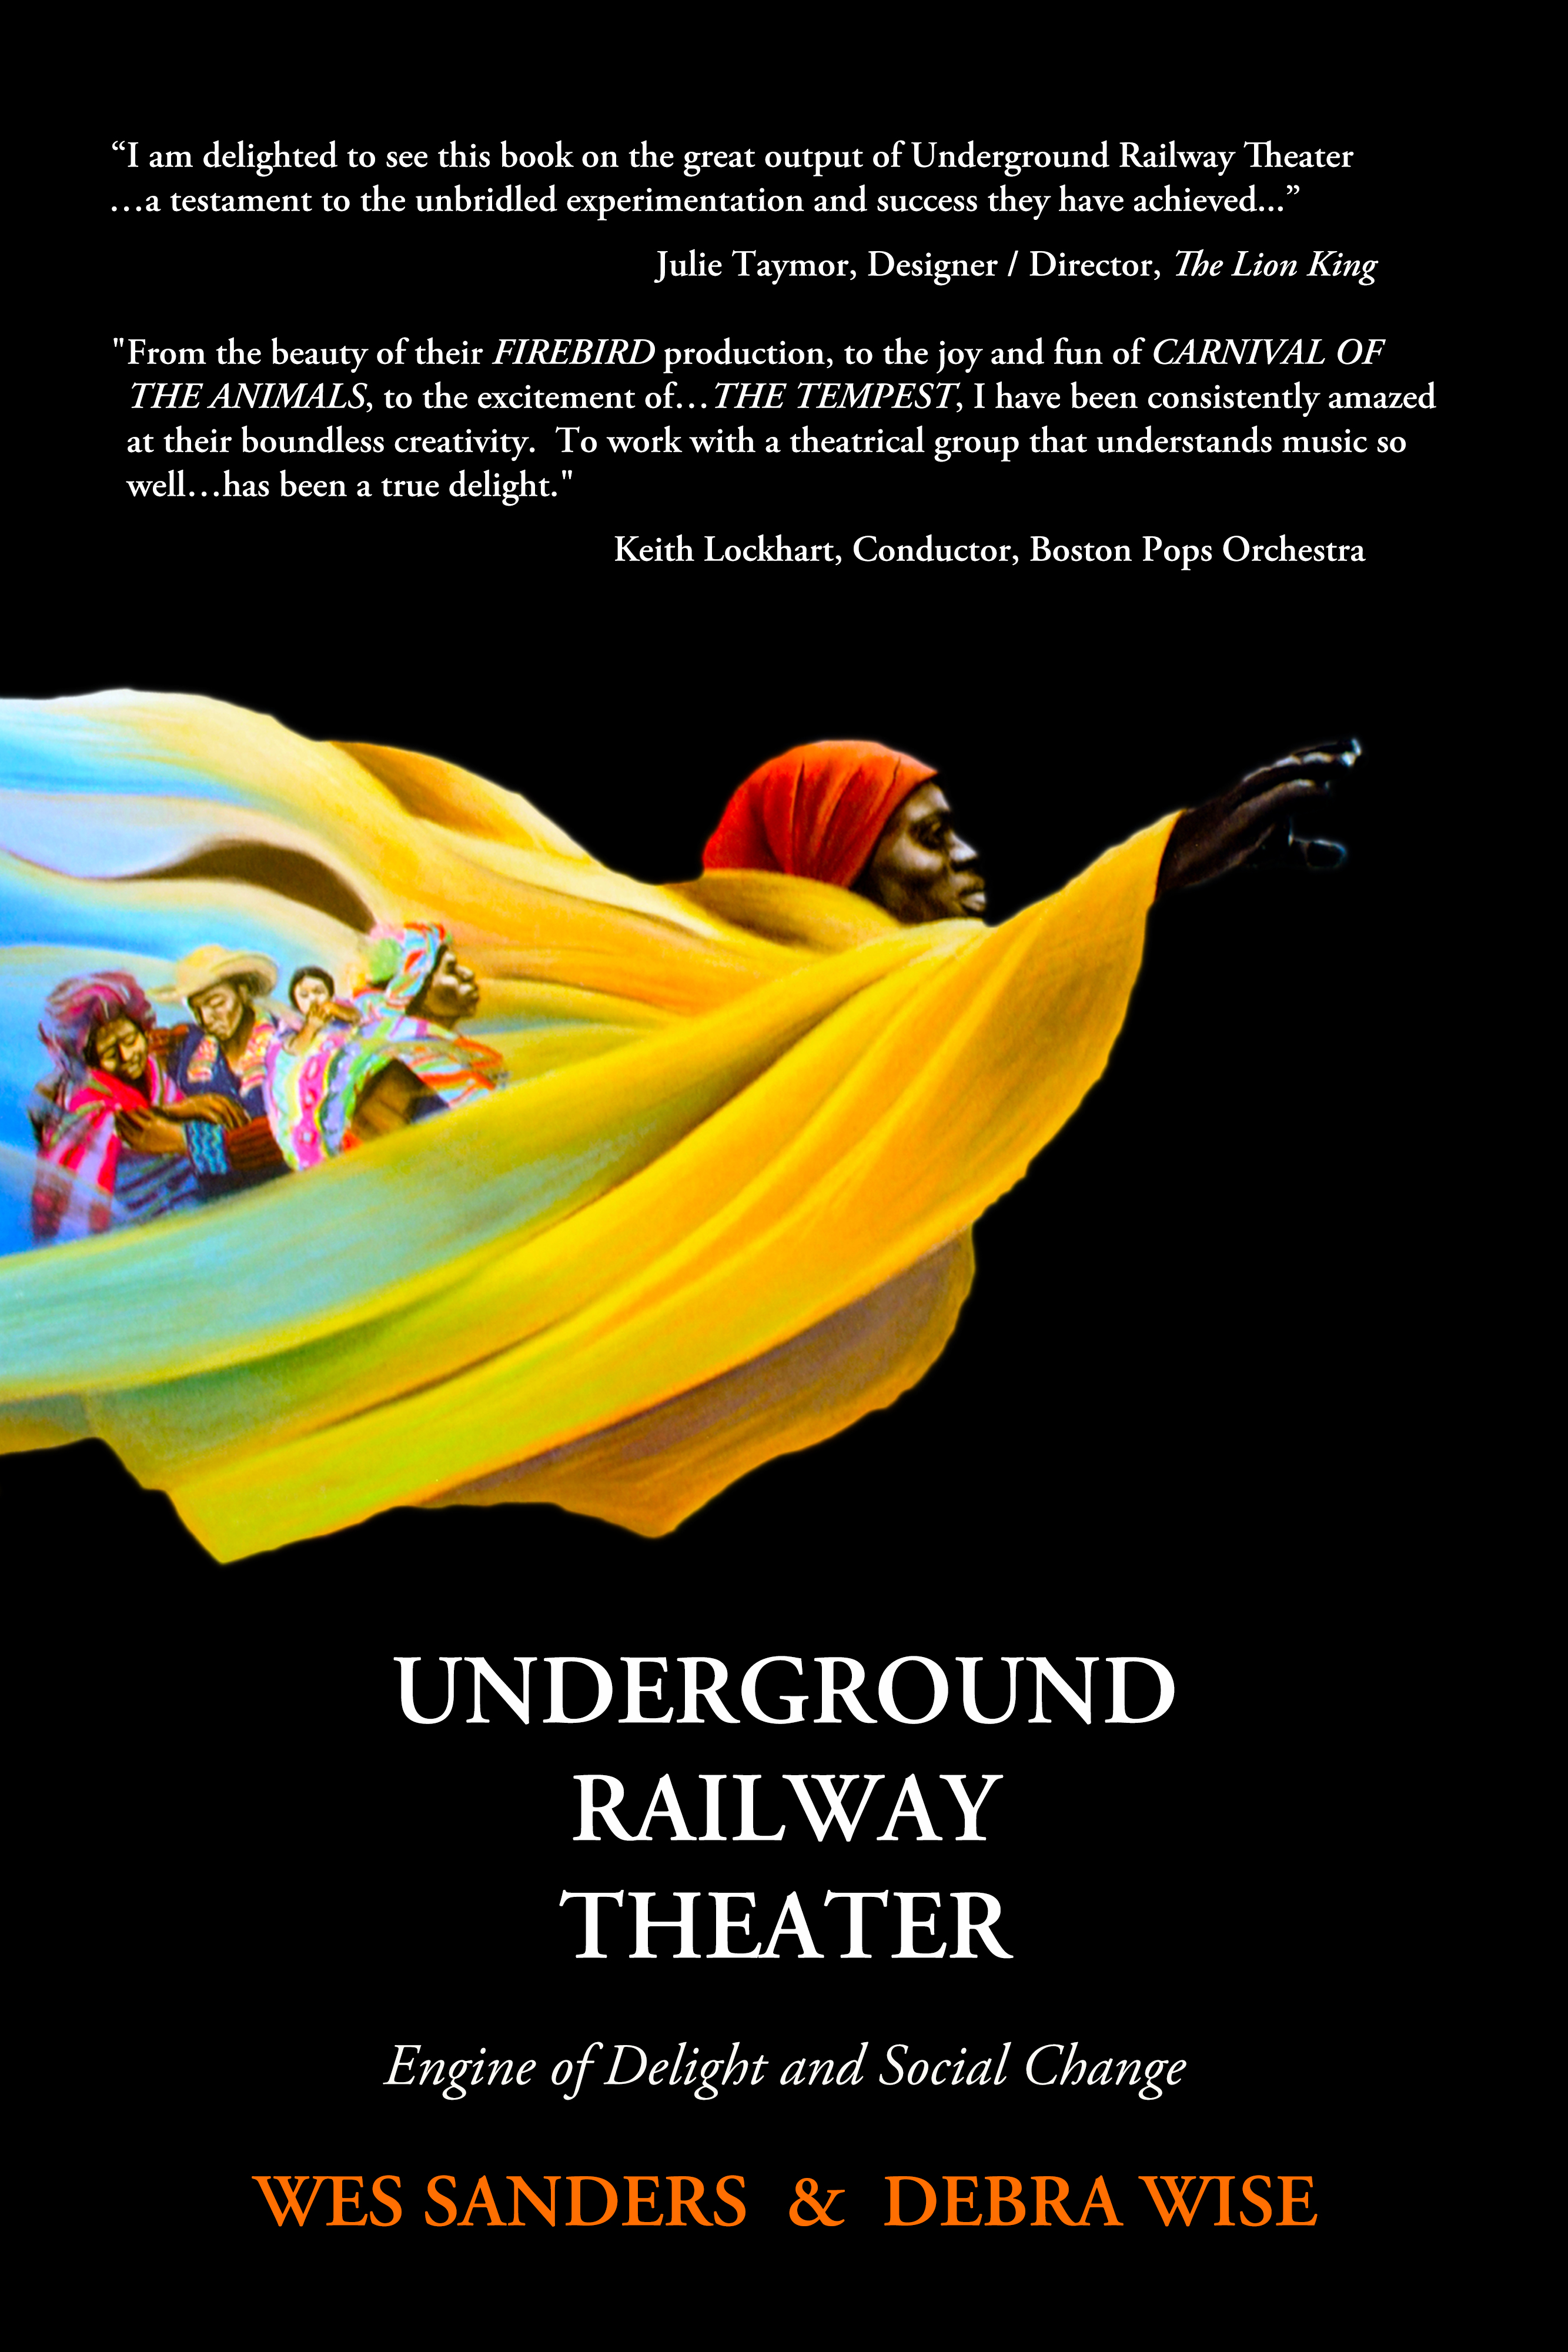 Underground Railway Theater, Engine of Delight & Social Change, an Ebook by  Wes Sanders & Debra Wise